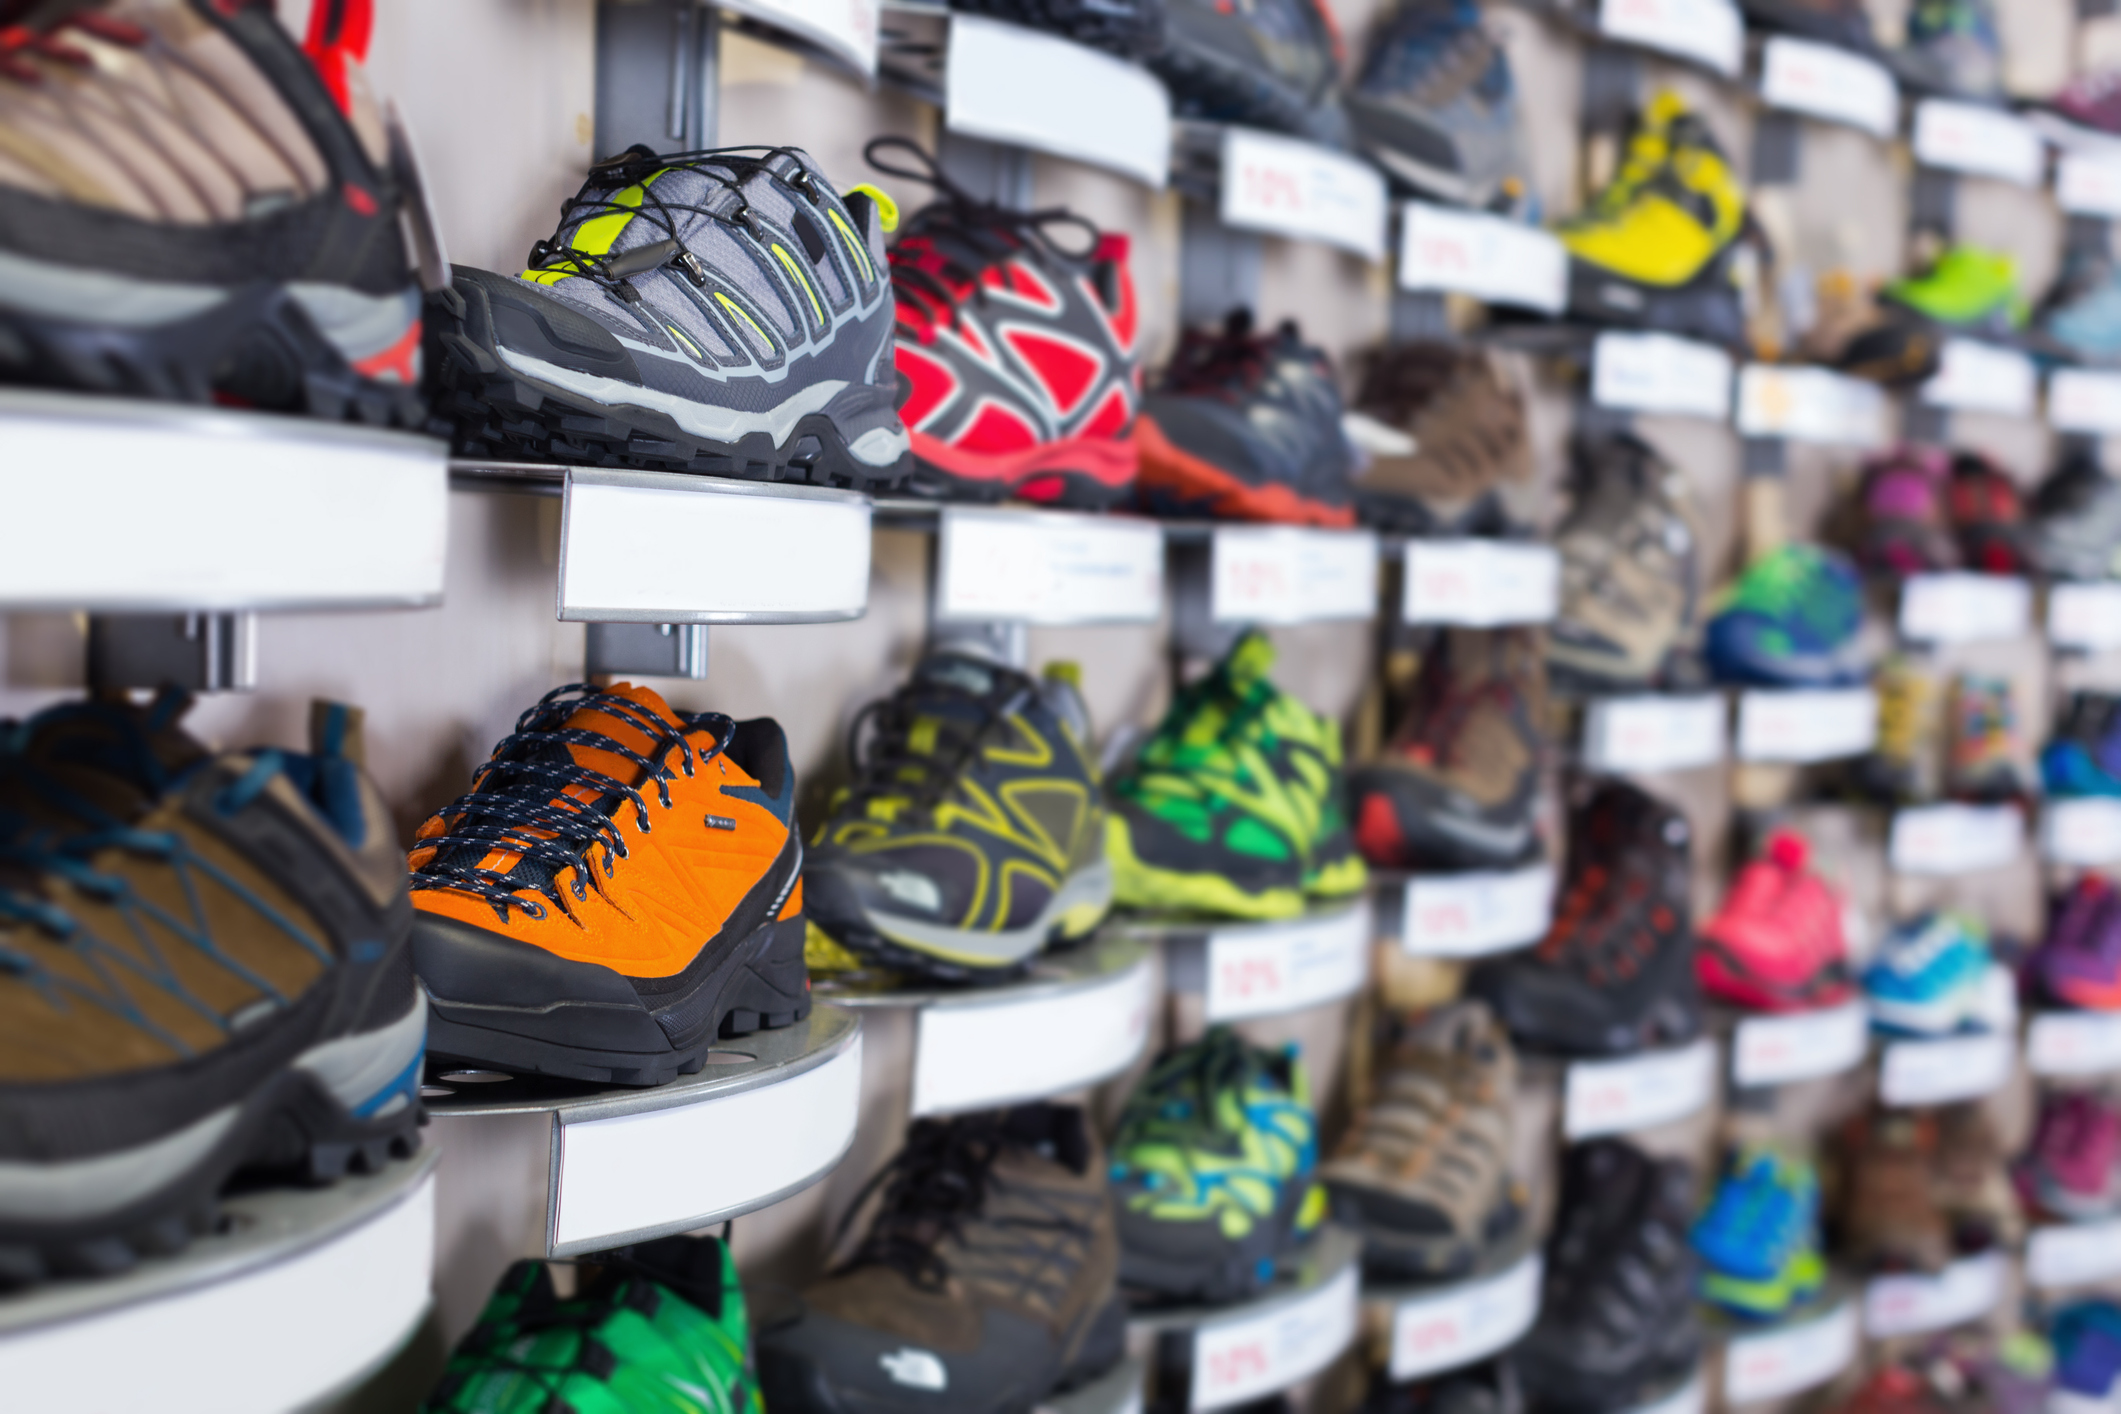 shoes in a sports store